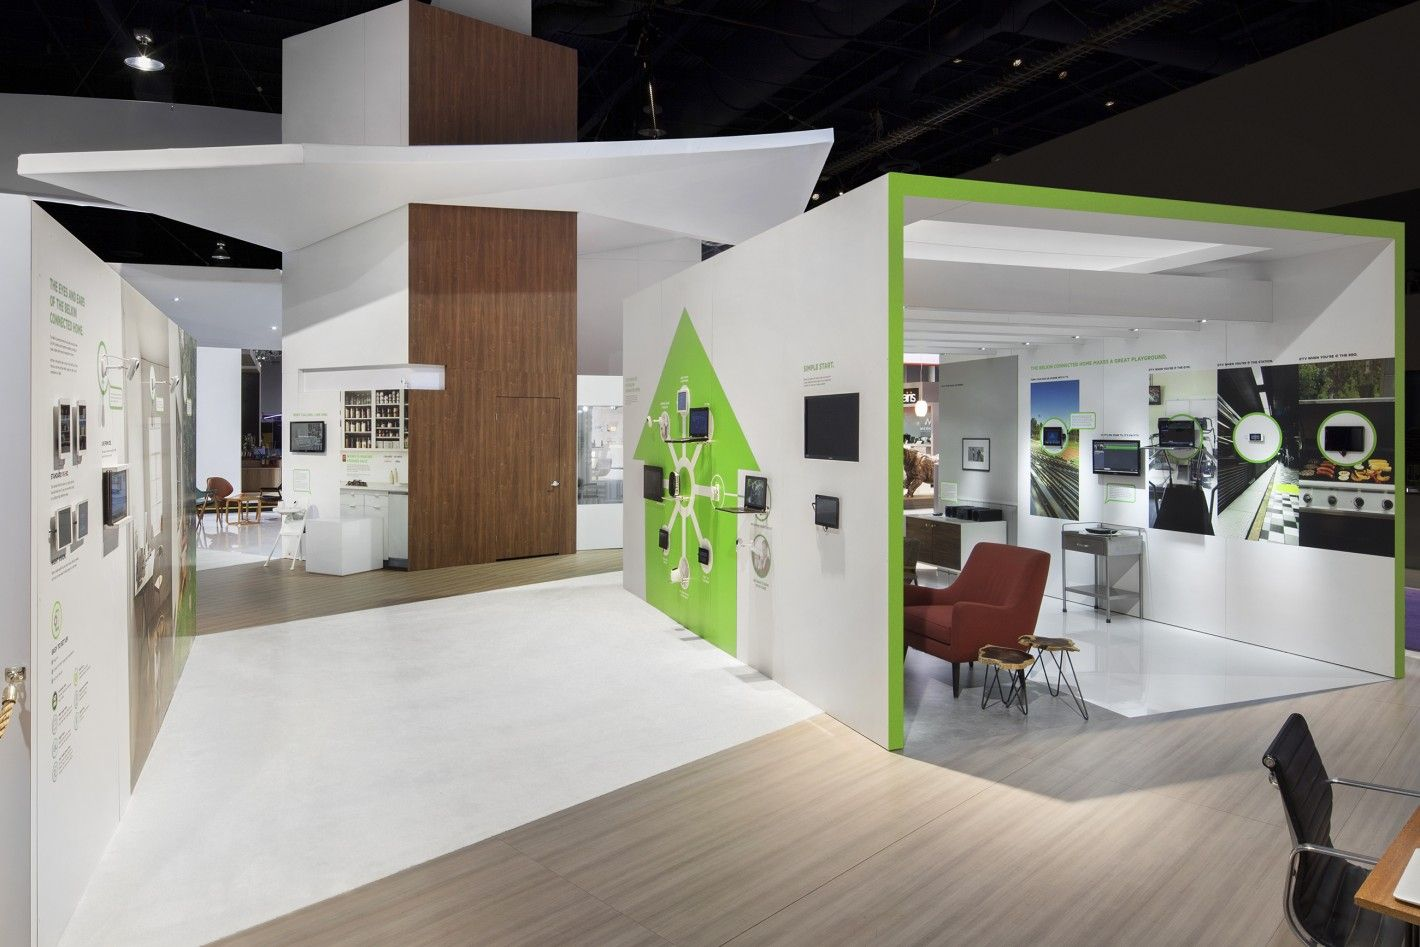 2_interior4_web1 1420×947 Jpg 1420 947 Exhibition Stand  # Muebles Ferreira Buga